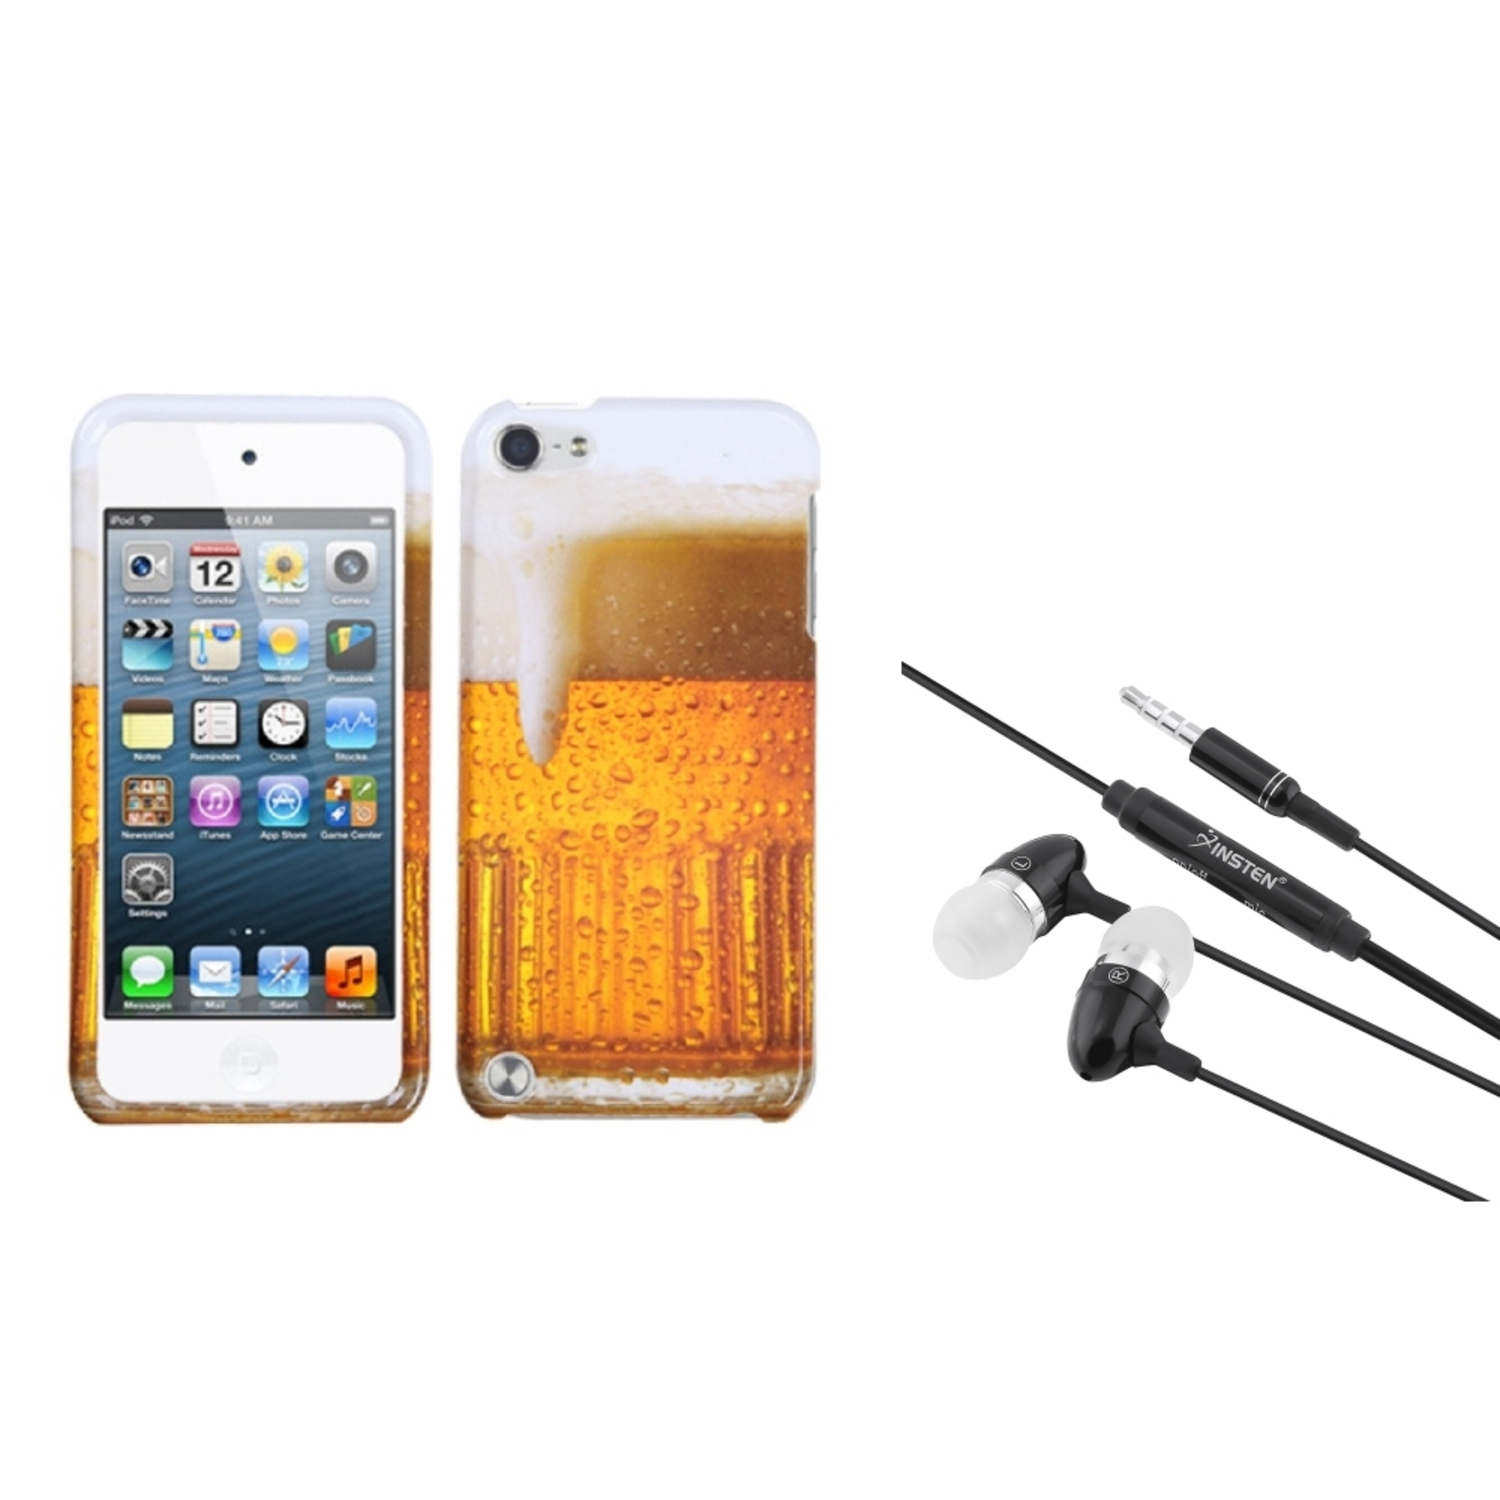 Insten Beer – Food Fight Collection Phone Case For iPod Touch 6 6G / 5 5G + 3.5mm Headset